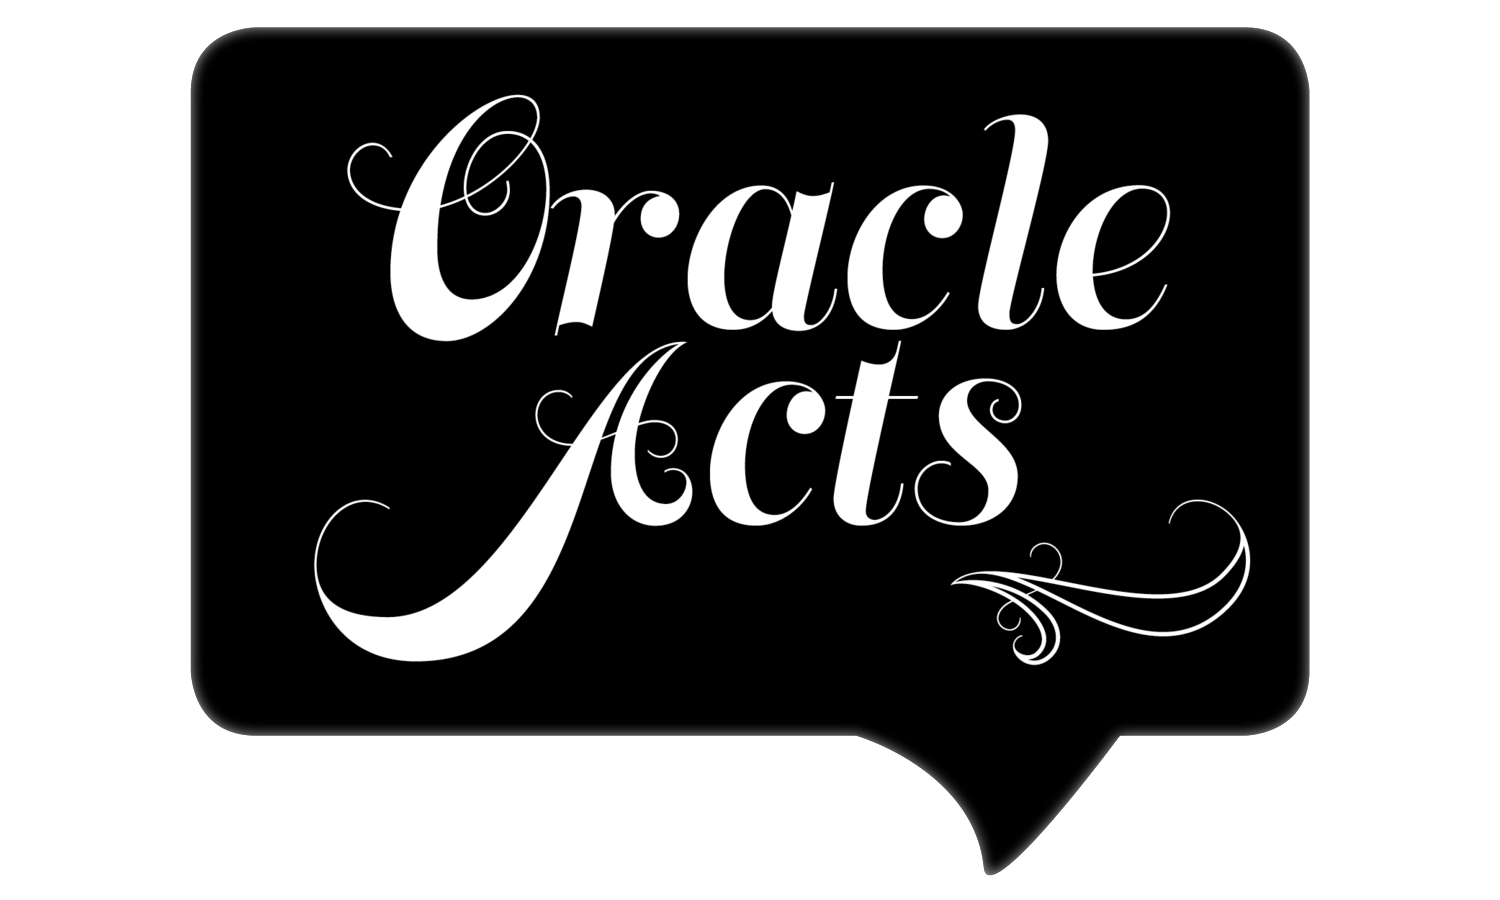 Oracle Acts